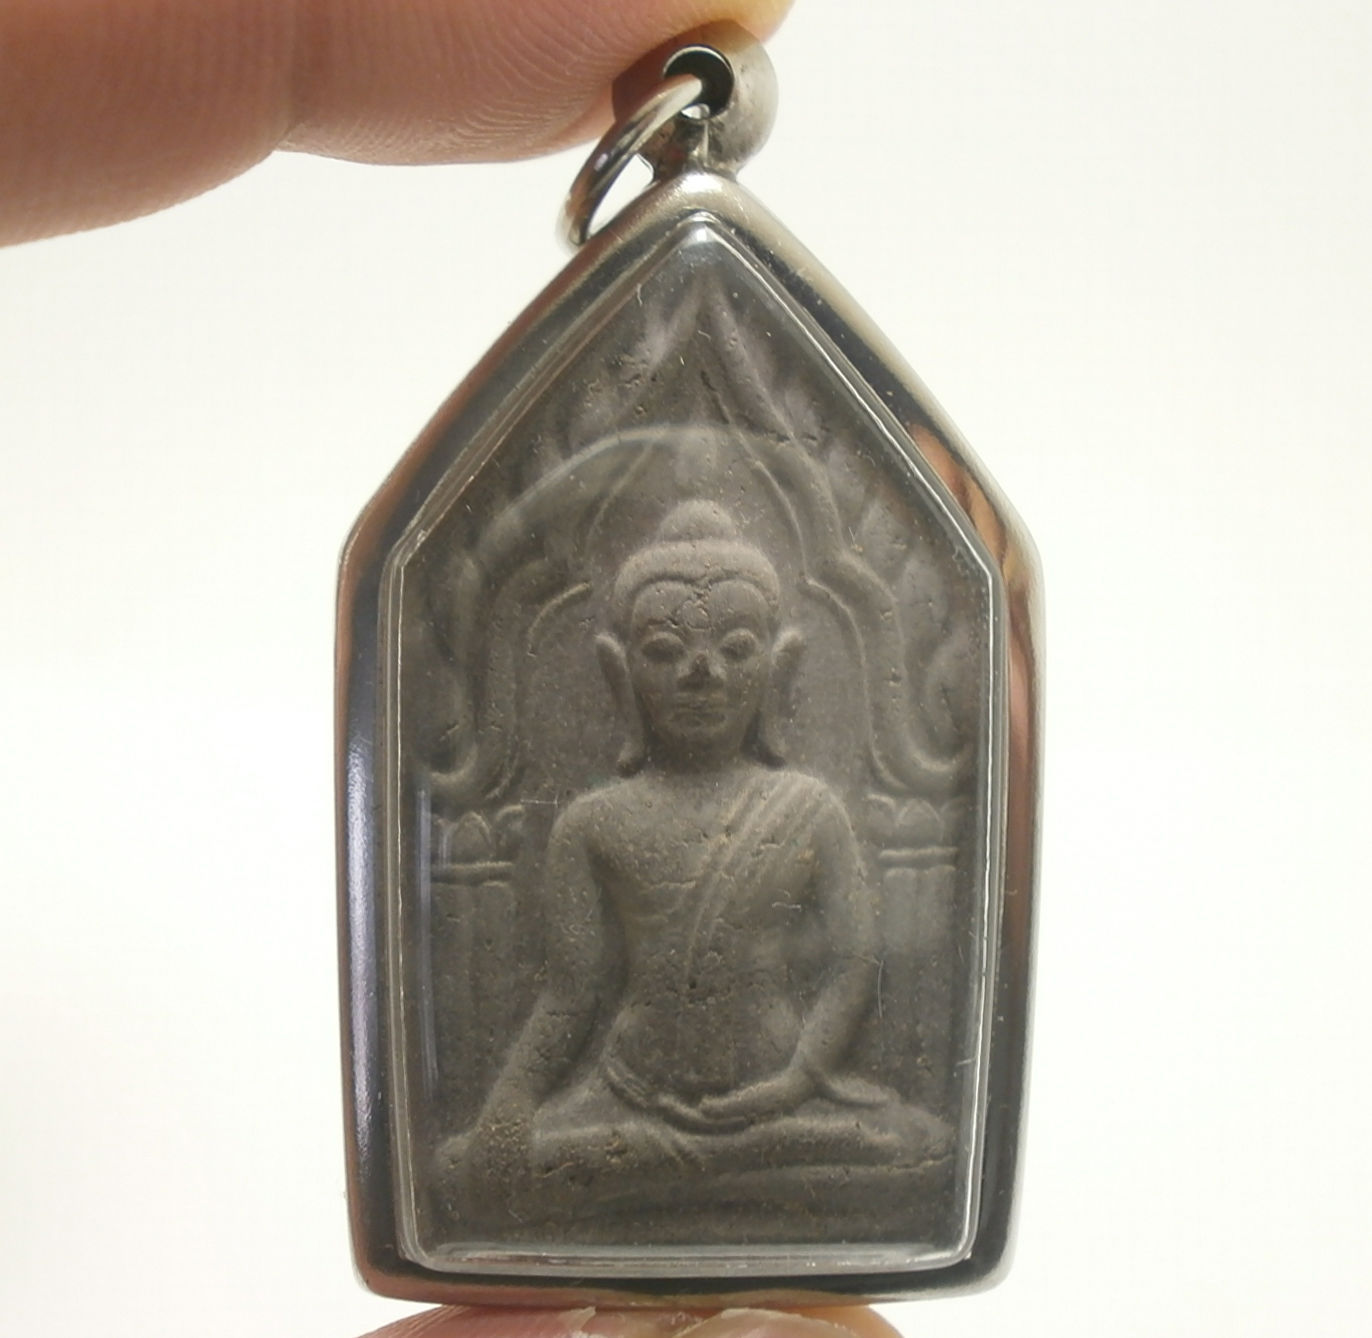 Primary image for KHUNPAEN GUMAN THONG LP POON THAI MIRACLE AMULET PENDANT LUCKY GAMBLE LOTTO RICH